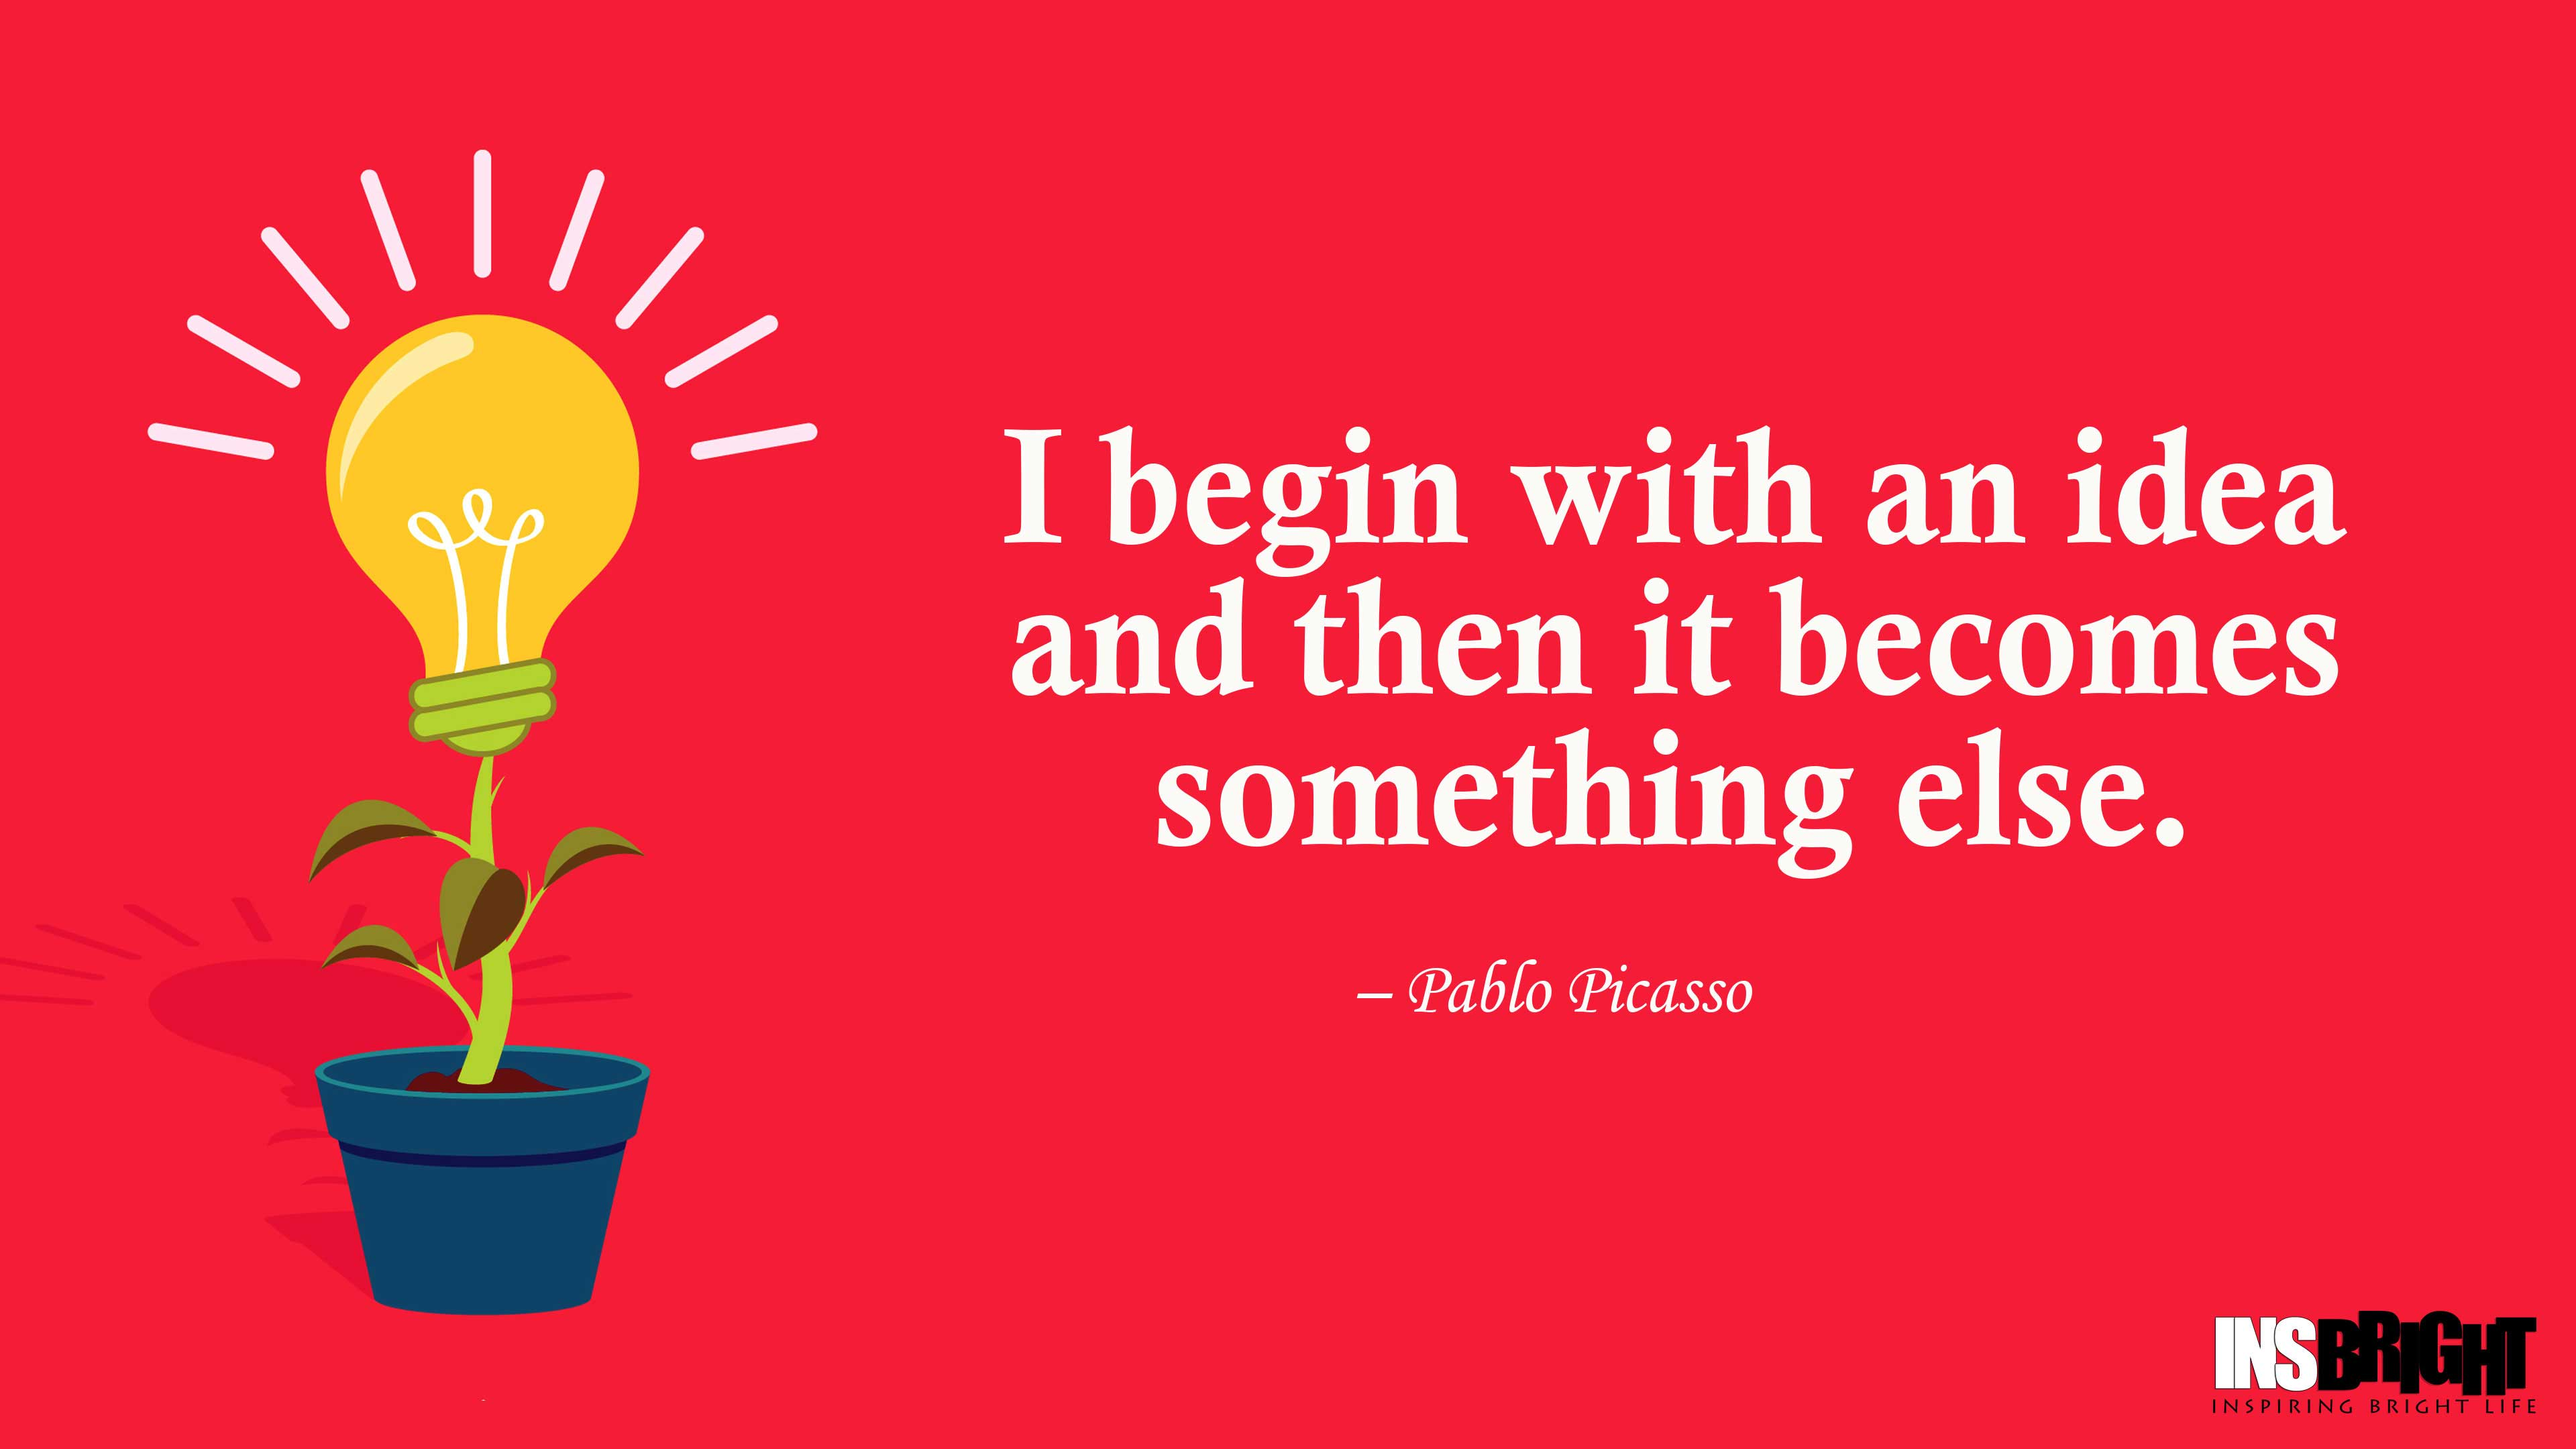 24+ Inspiring Idea Quotes With Images | Insbright